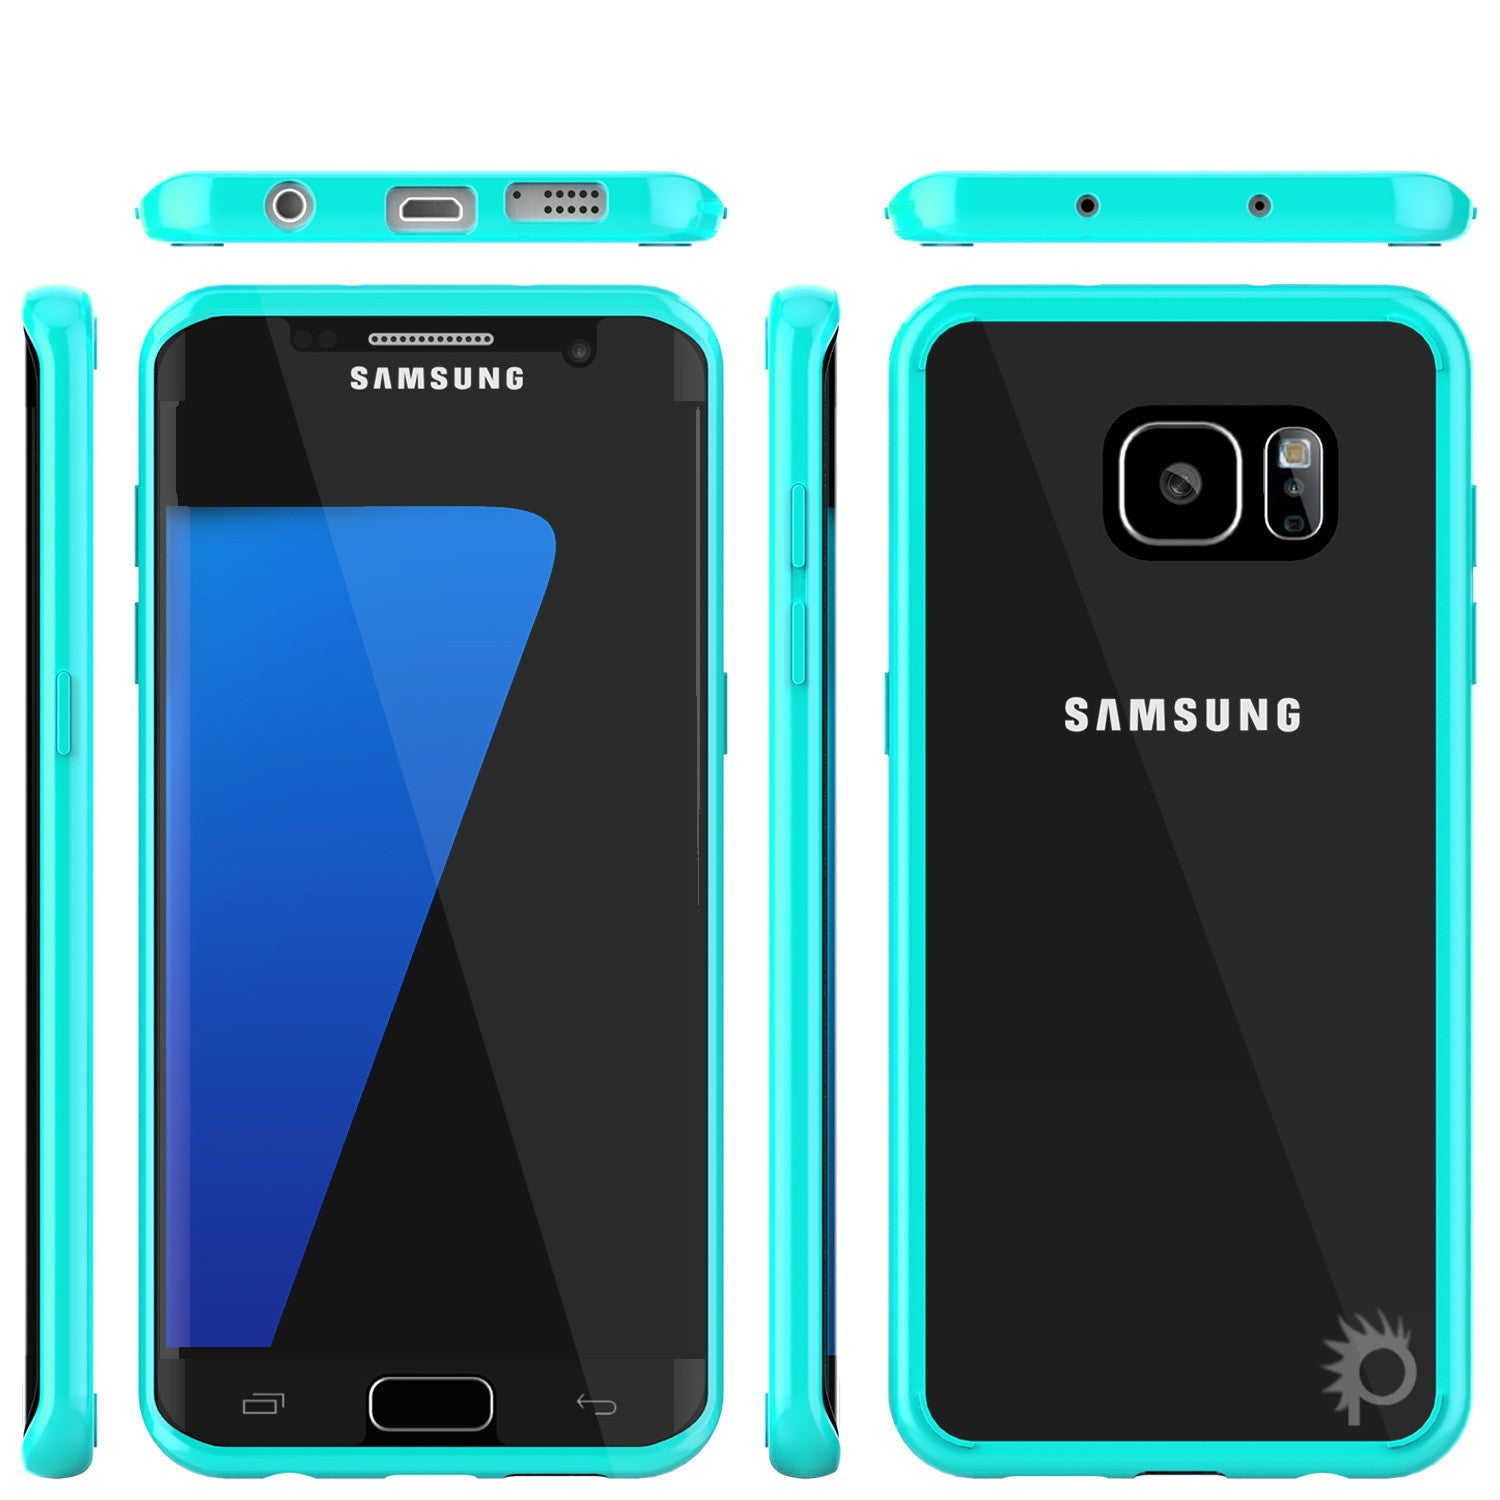 PUNKCASE - Lucid 2.0 Series Slick Frame Case for Samsung S7 Edge | Teal